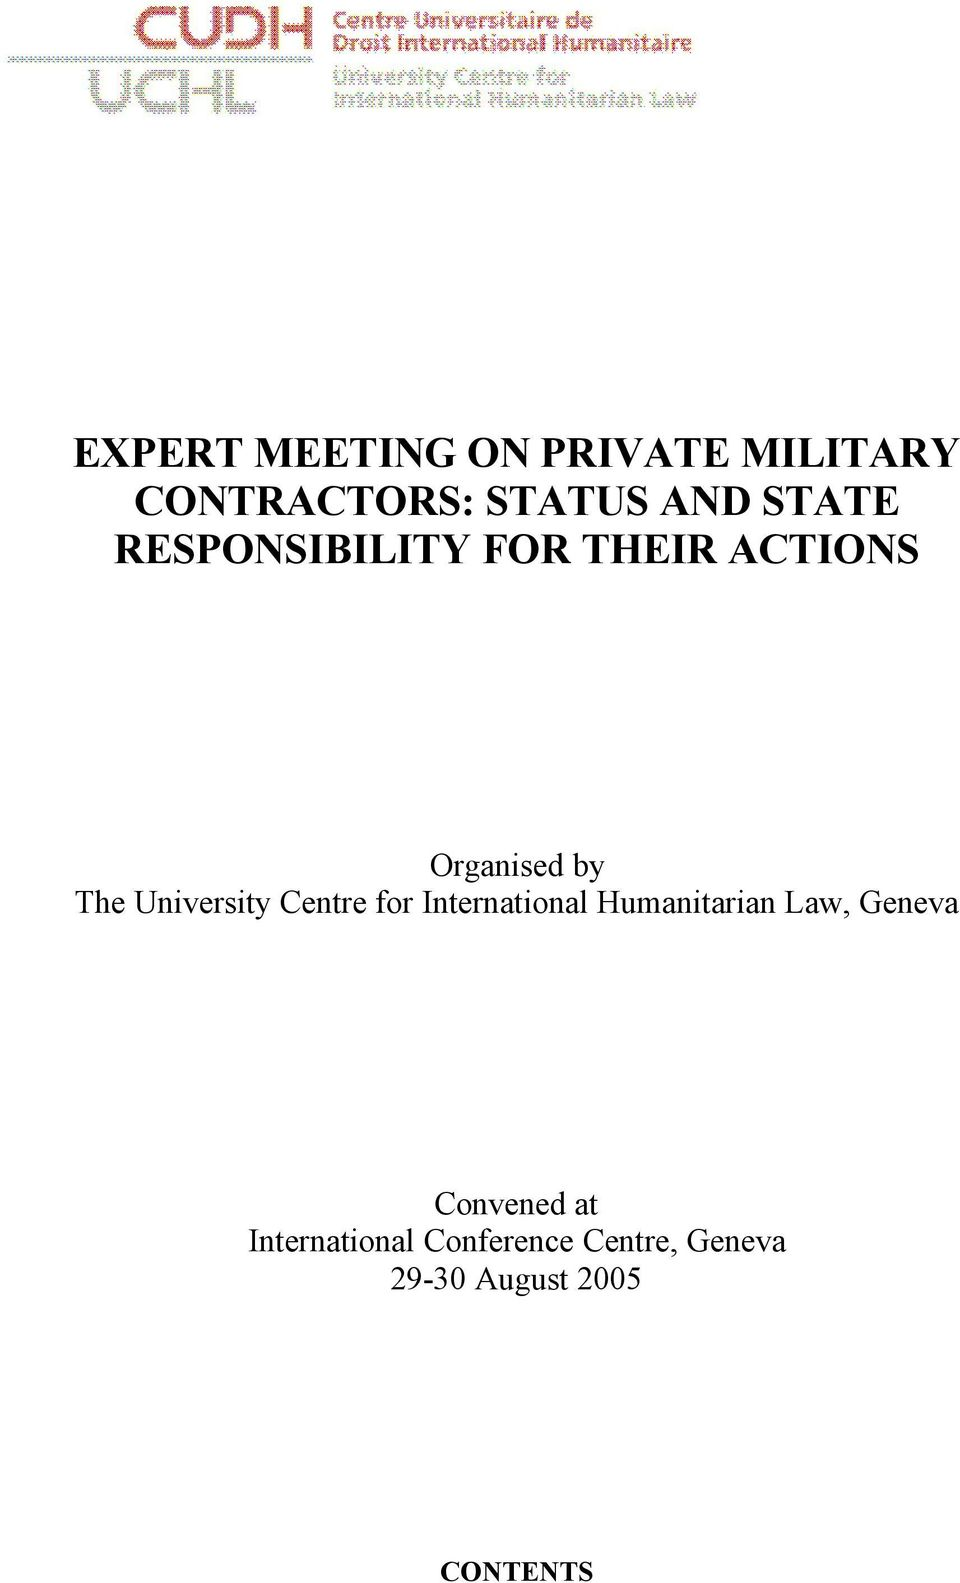 University Centre for International Humanitarian Law, Geneva